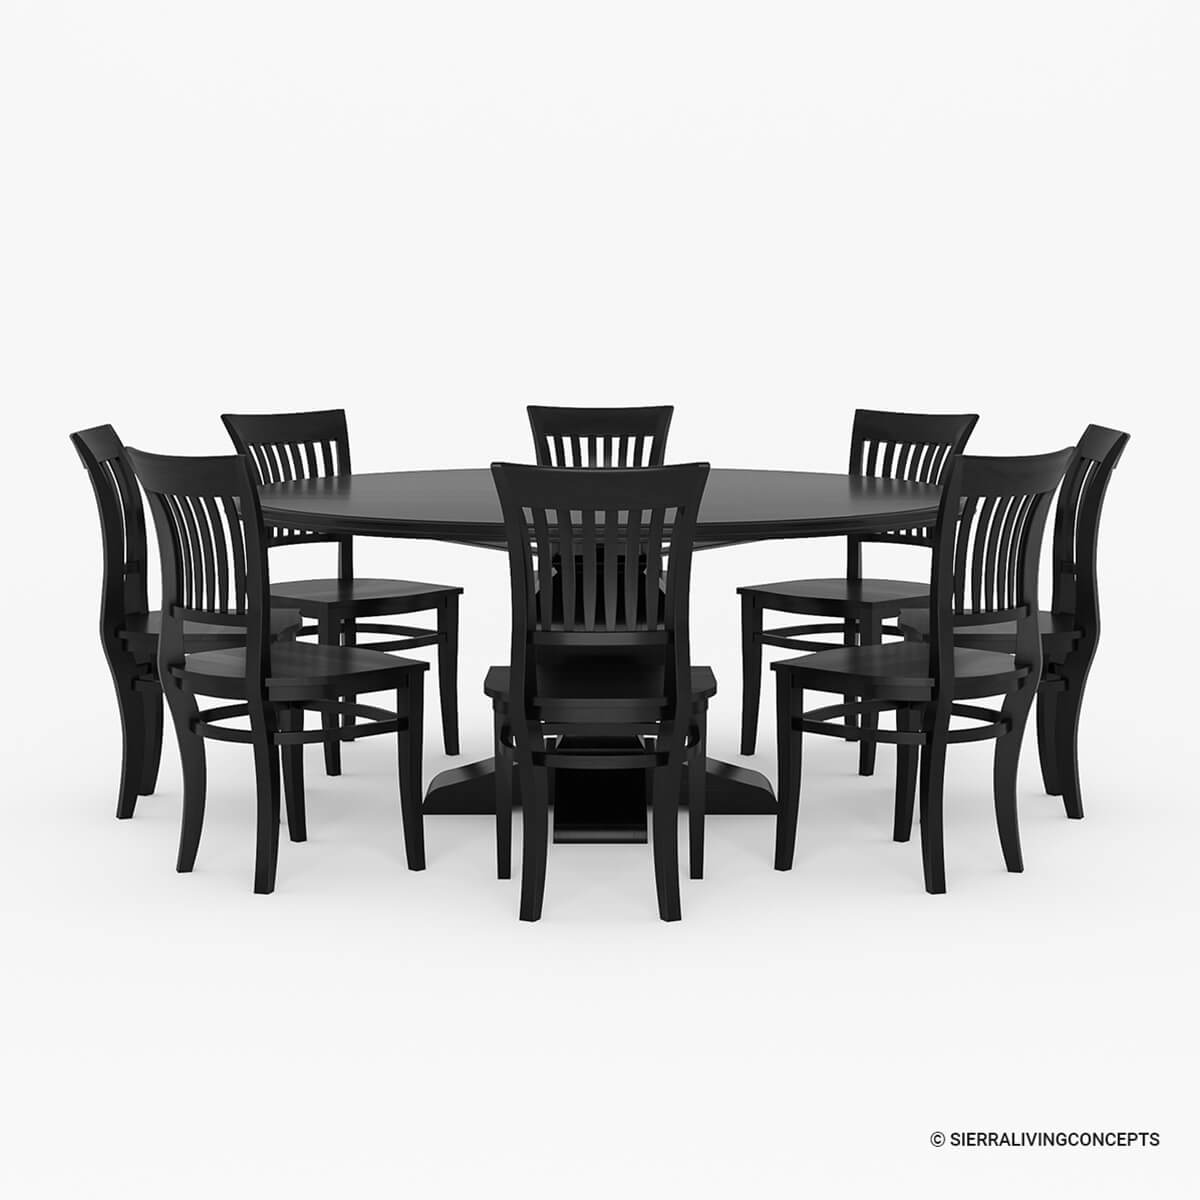 Sierra Nevada Large Round Rustic Solid Wood Dining Table  : 41281 from www.sierralivingconcepts.com size 800 x 800 jpeg 73kB